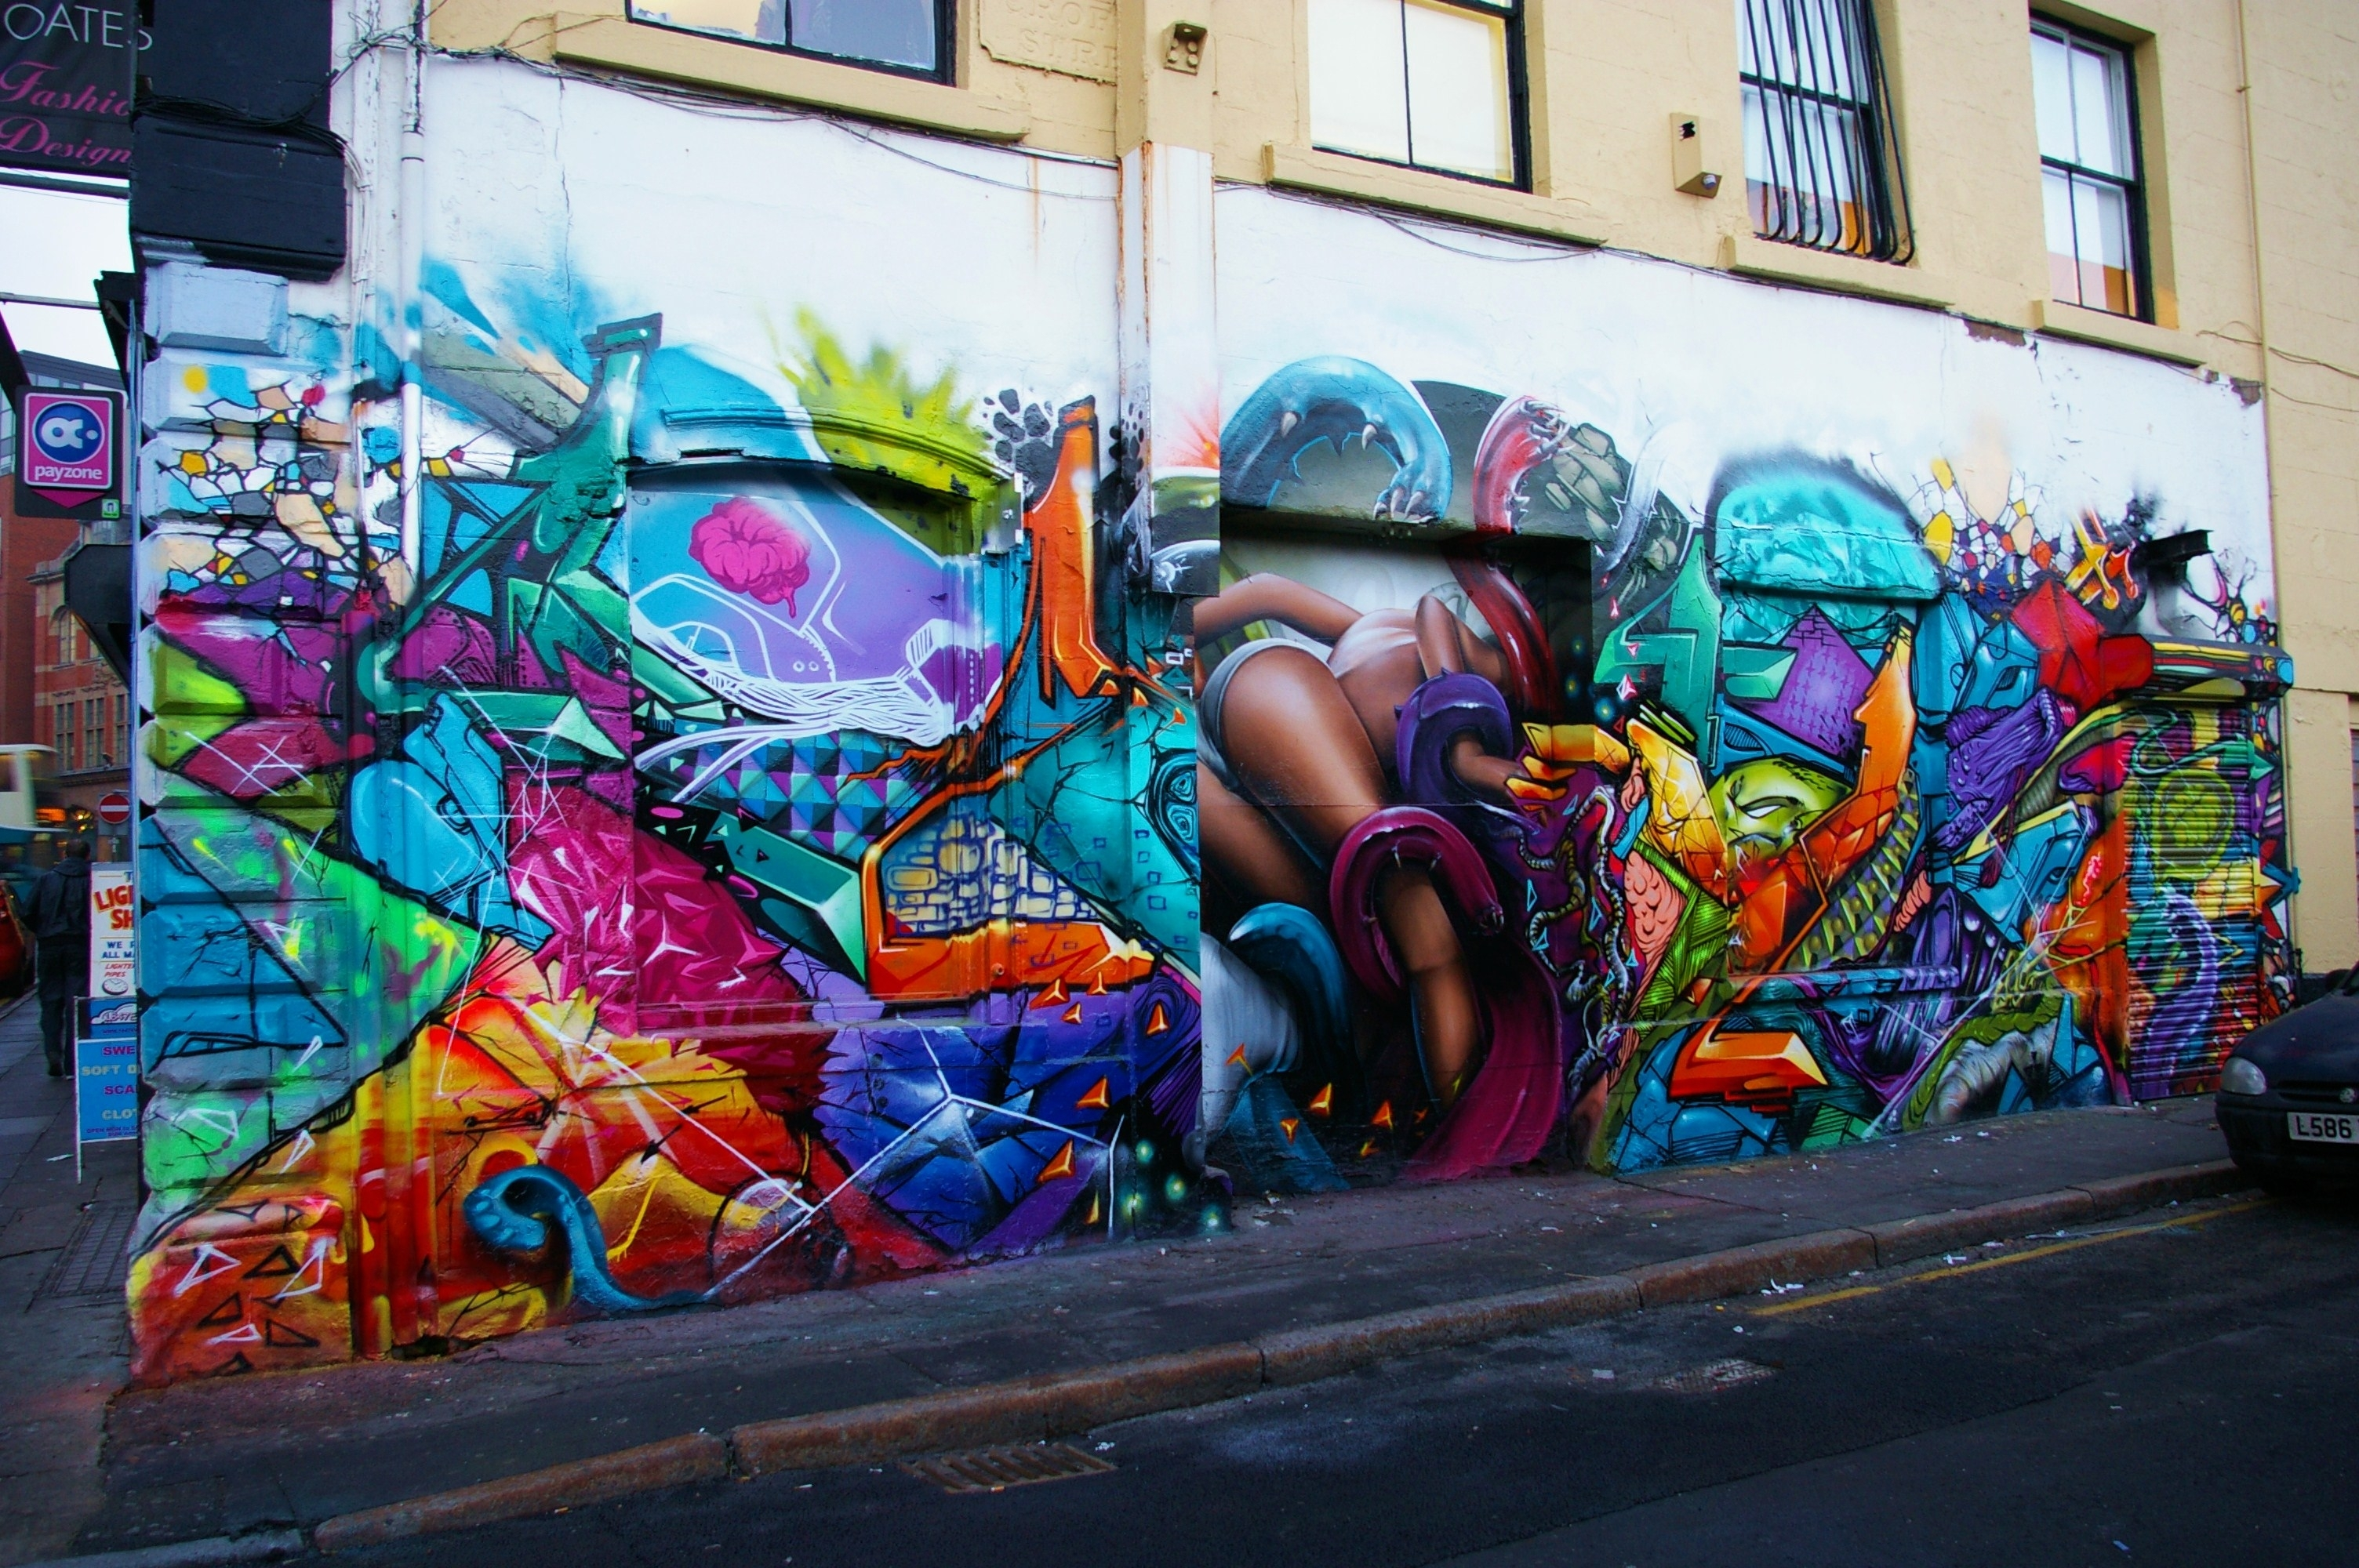 Walls For Artists – Zap Graffiti Liverpool Throughout Most Current Graffiti Wall Art (View 18 of 20)